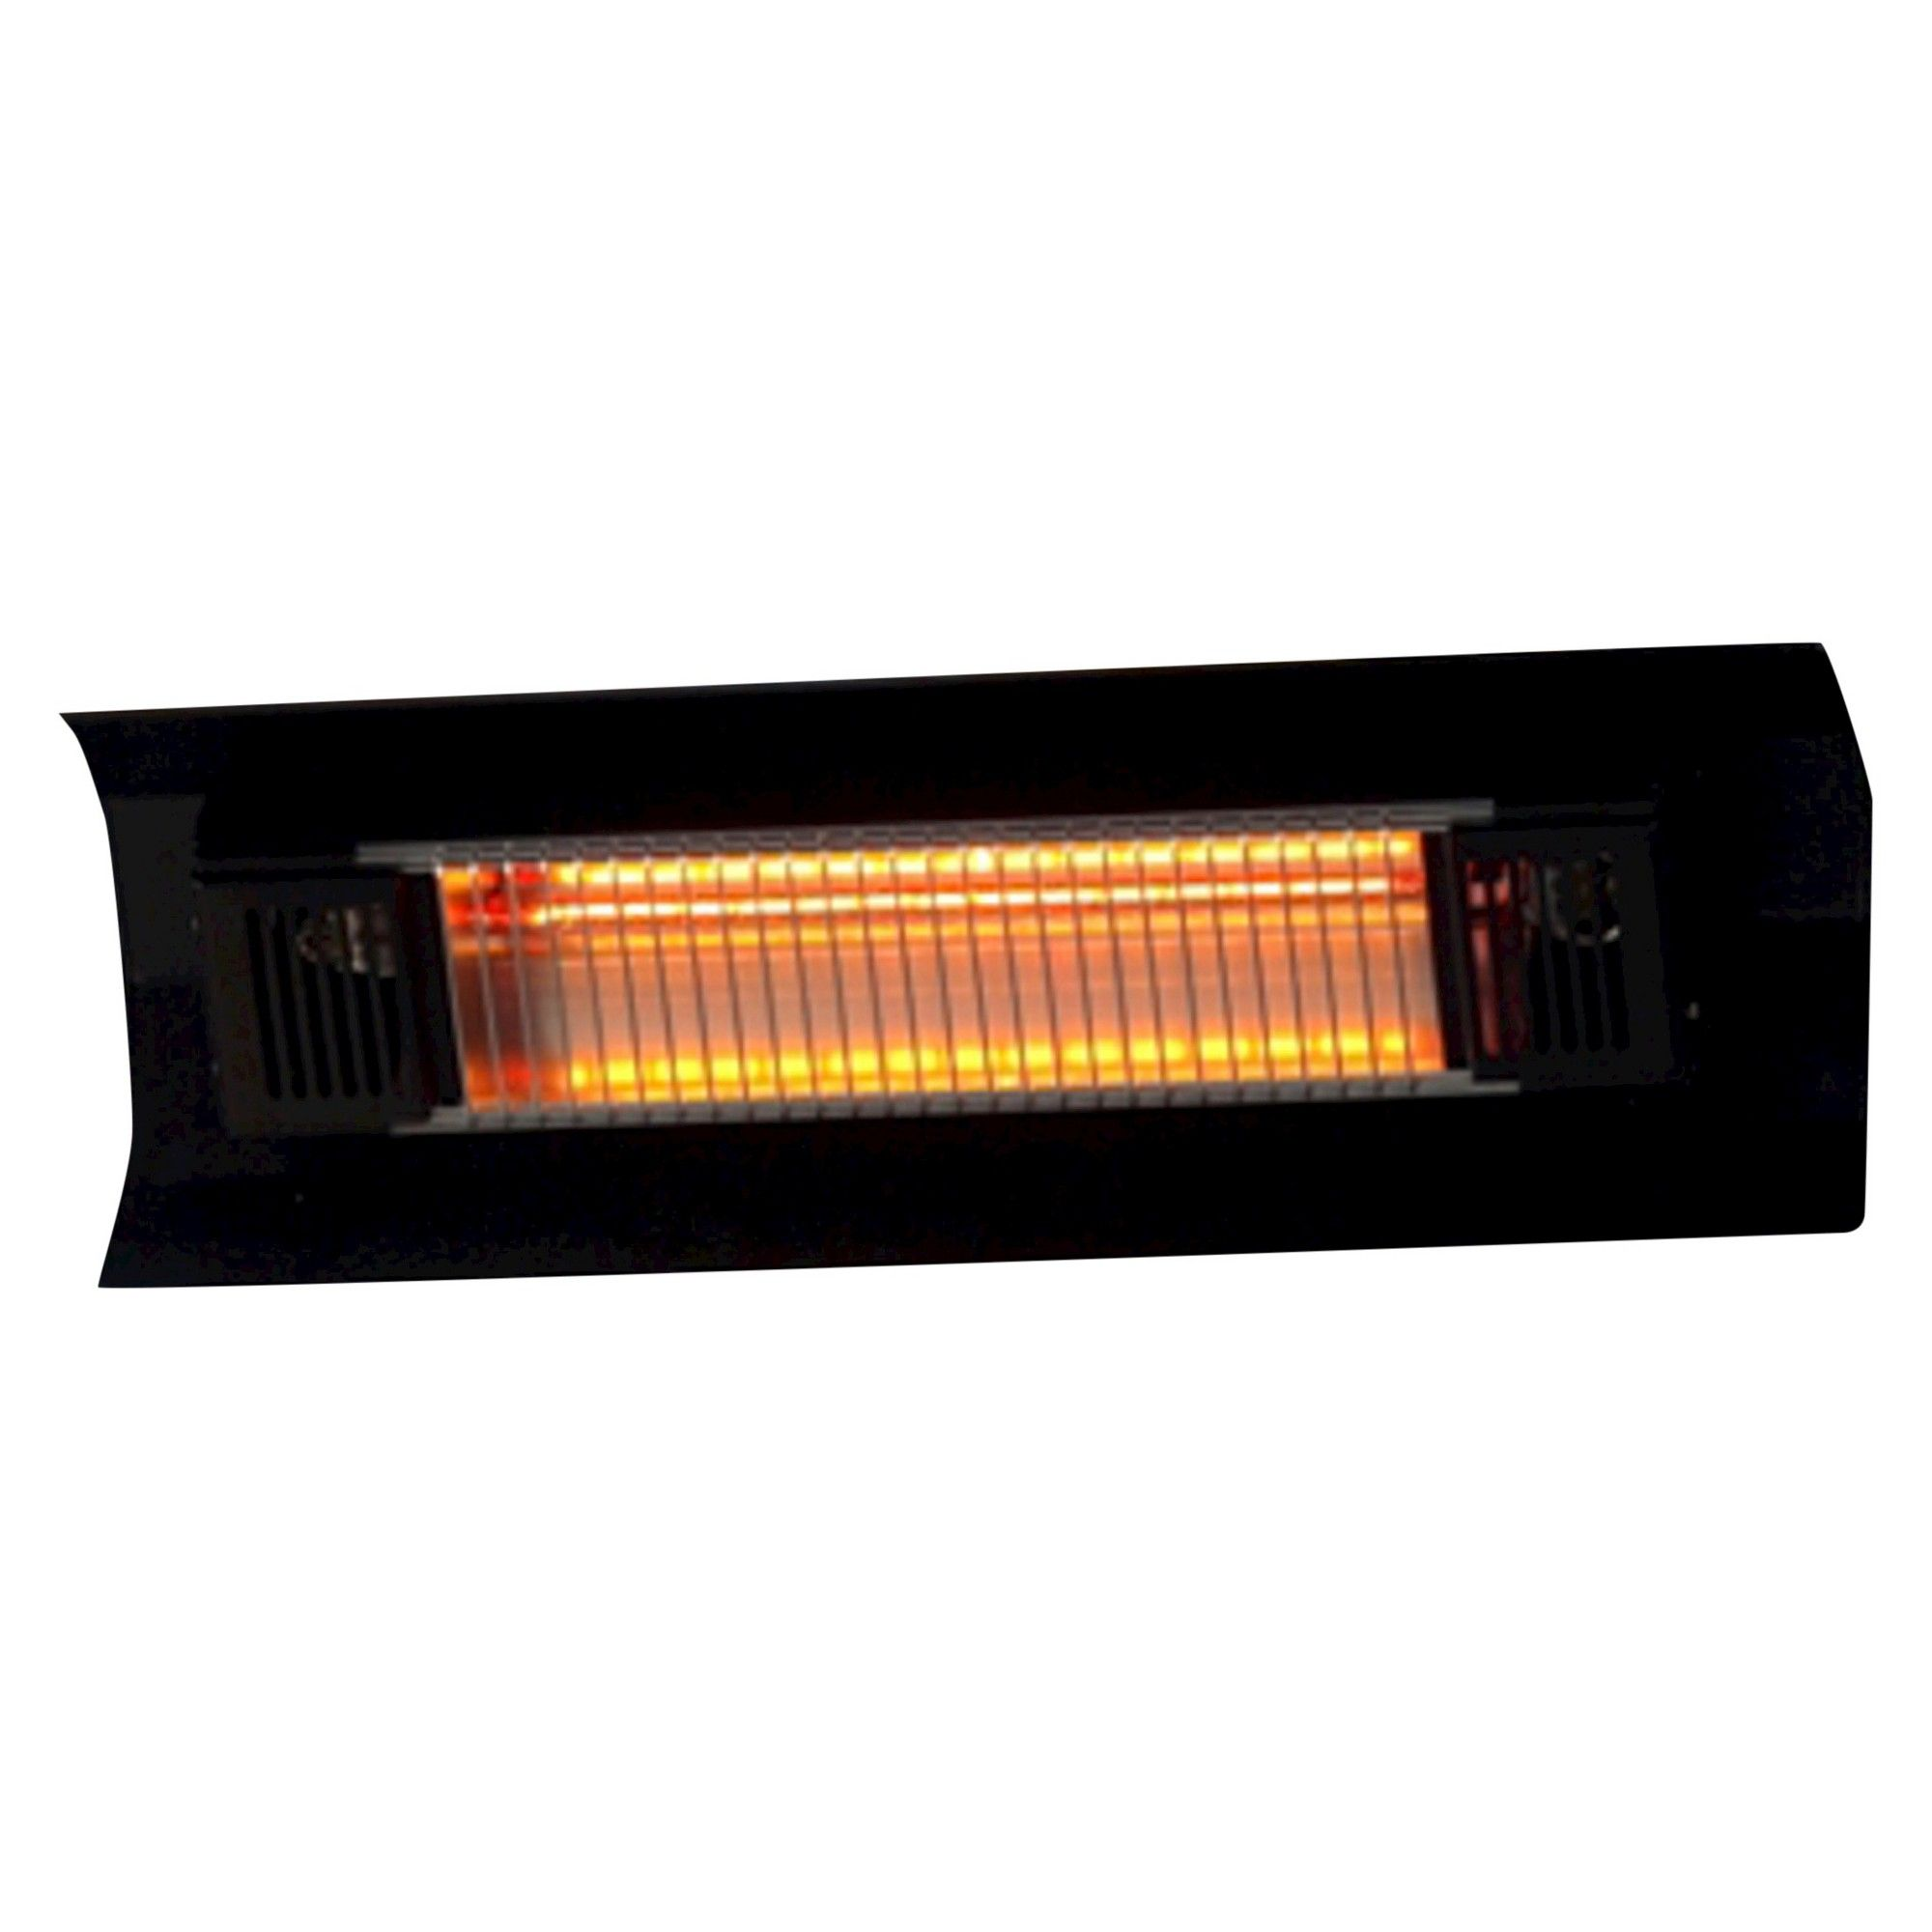 Fire sense black steel wall mounted infrared patio heater wall